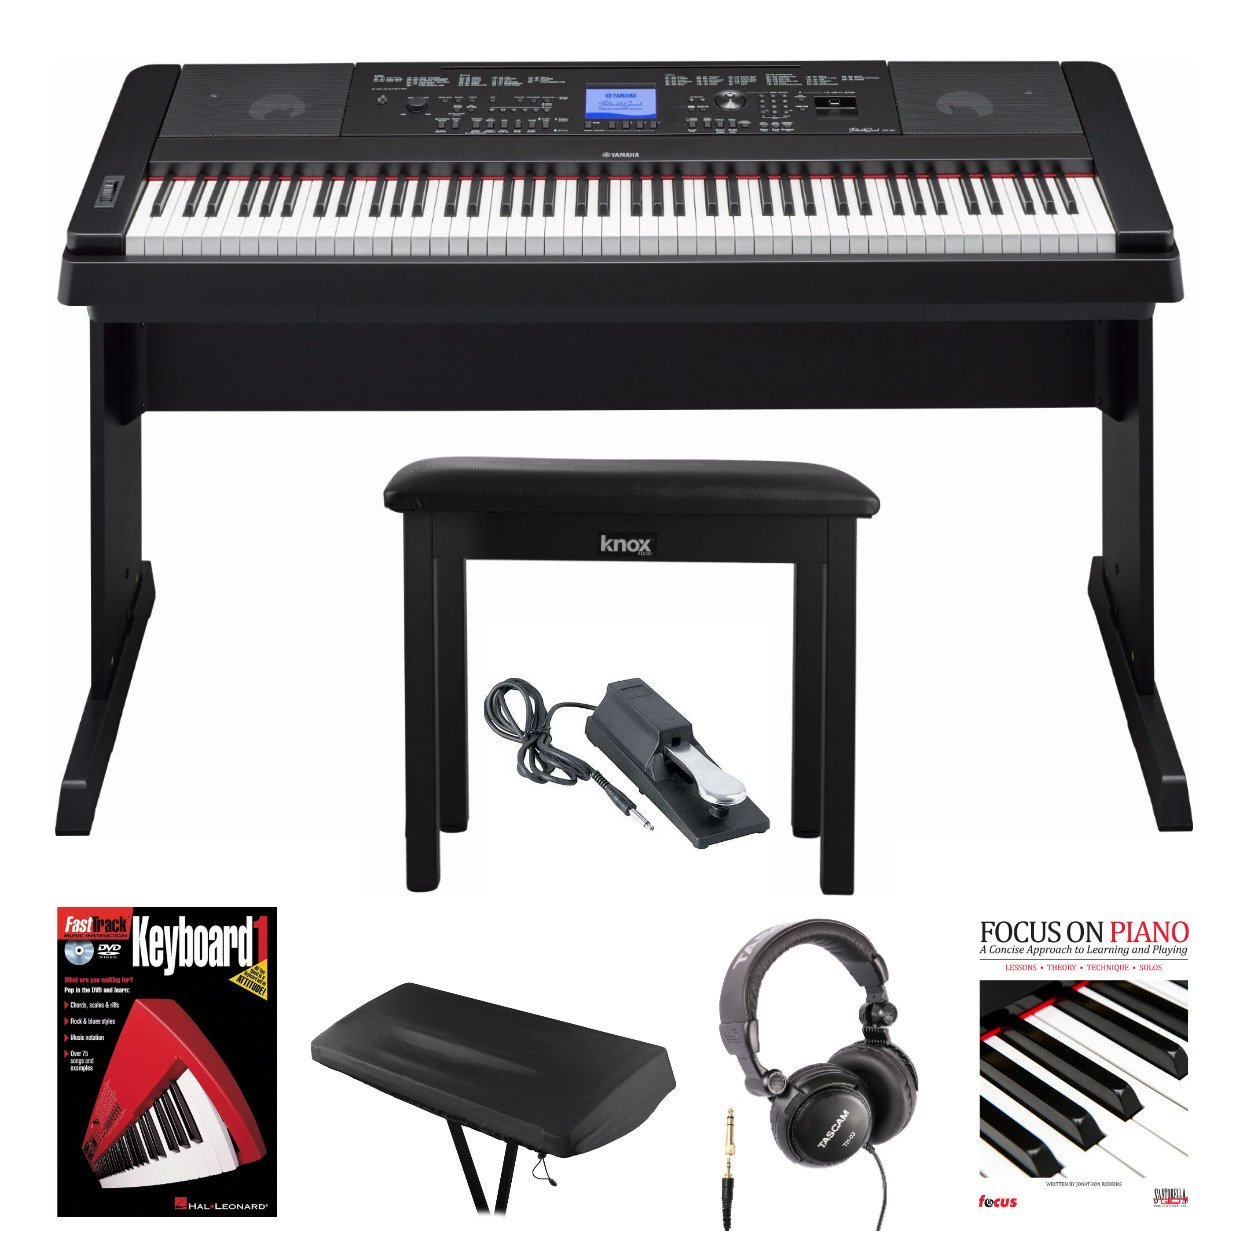 Yamaha DGX-660 88 Weighted Keys Piano with Knox Piano Bench, Headphones, Sustain Pedal Dust Cover, Book & DVD by YAMAHA